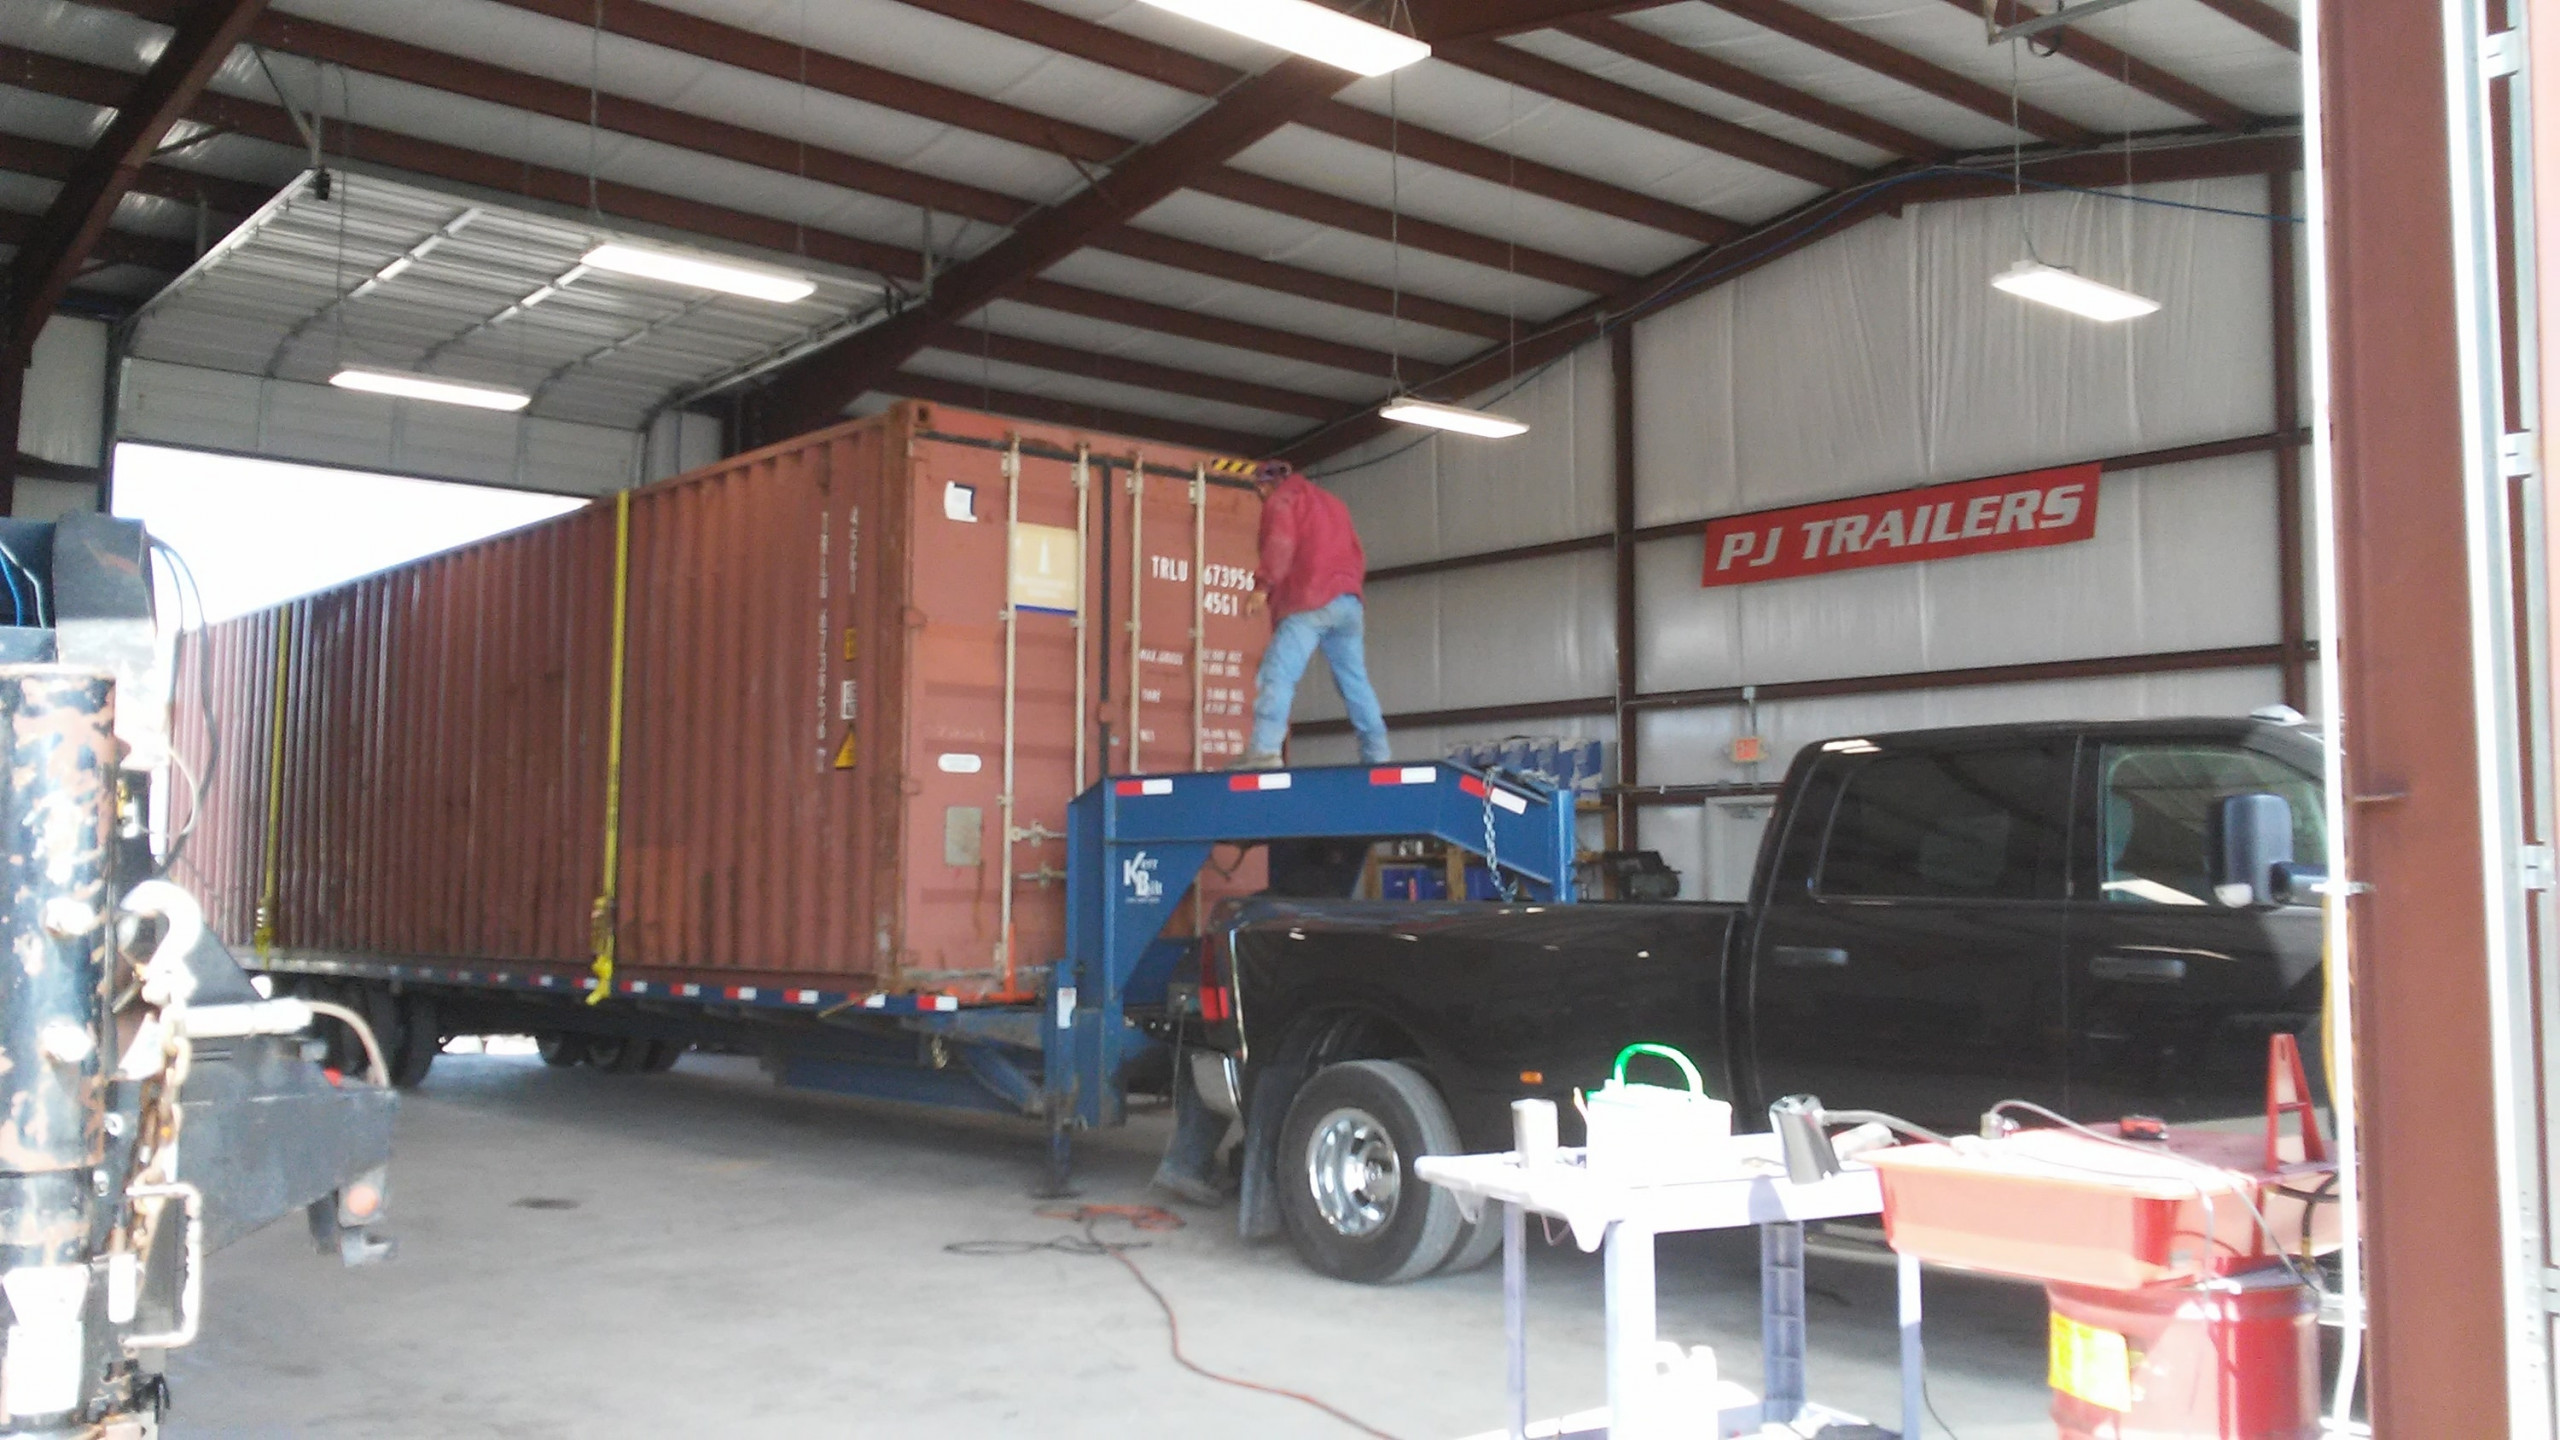 PJ Trailers being serviced